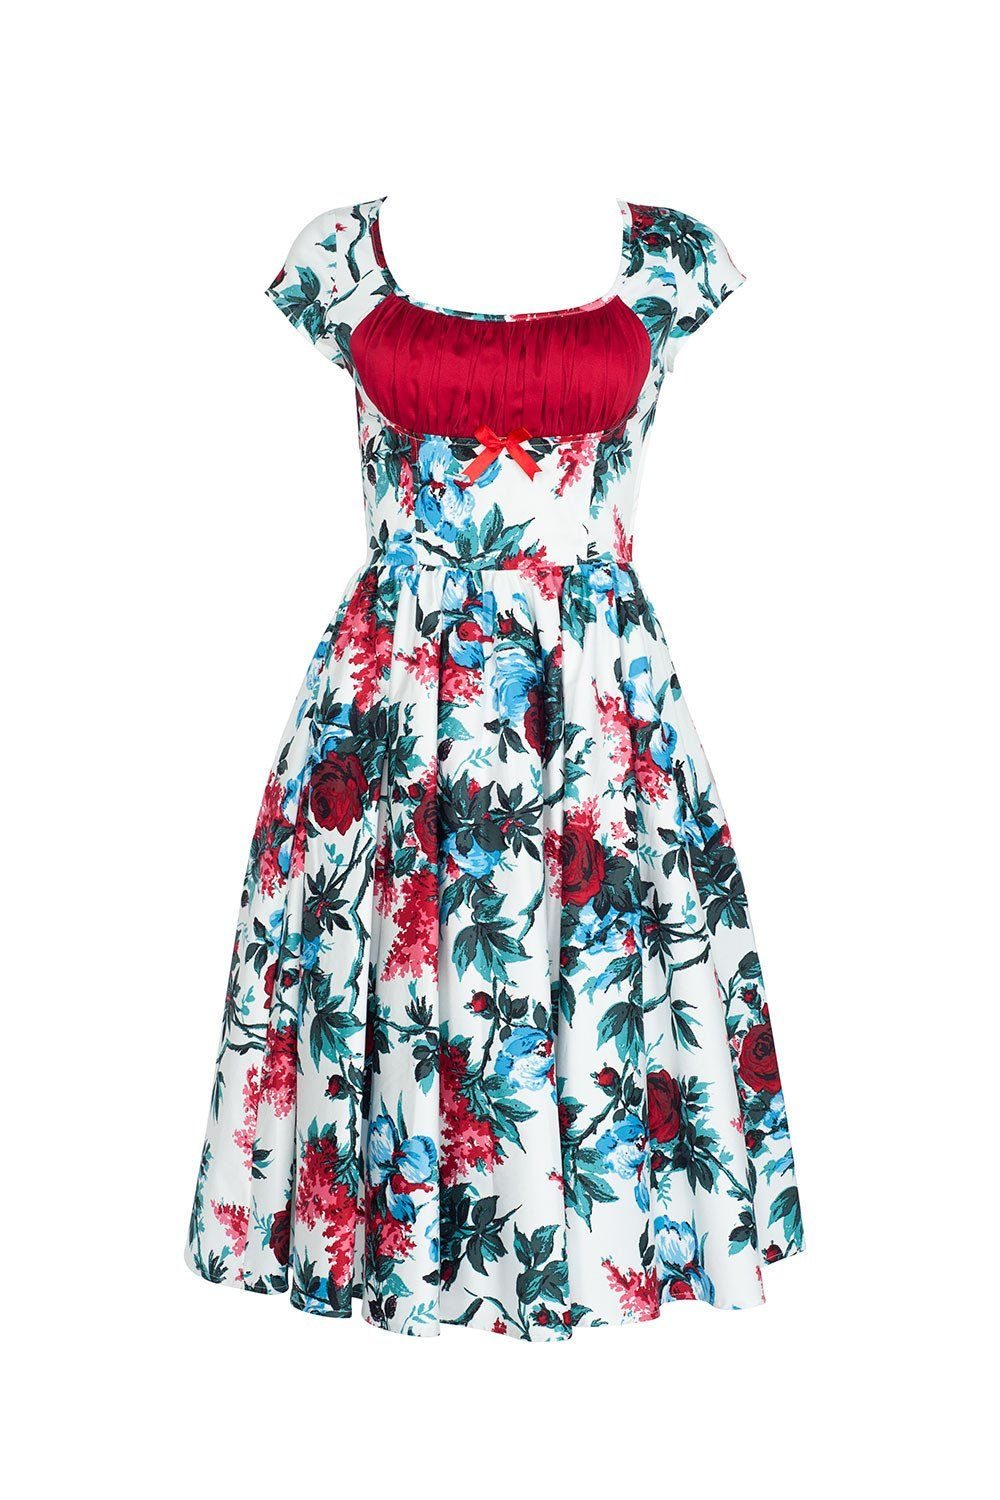 fde23669ab Pinup Couture Evelyn Dress in White and Red Floral